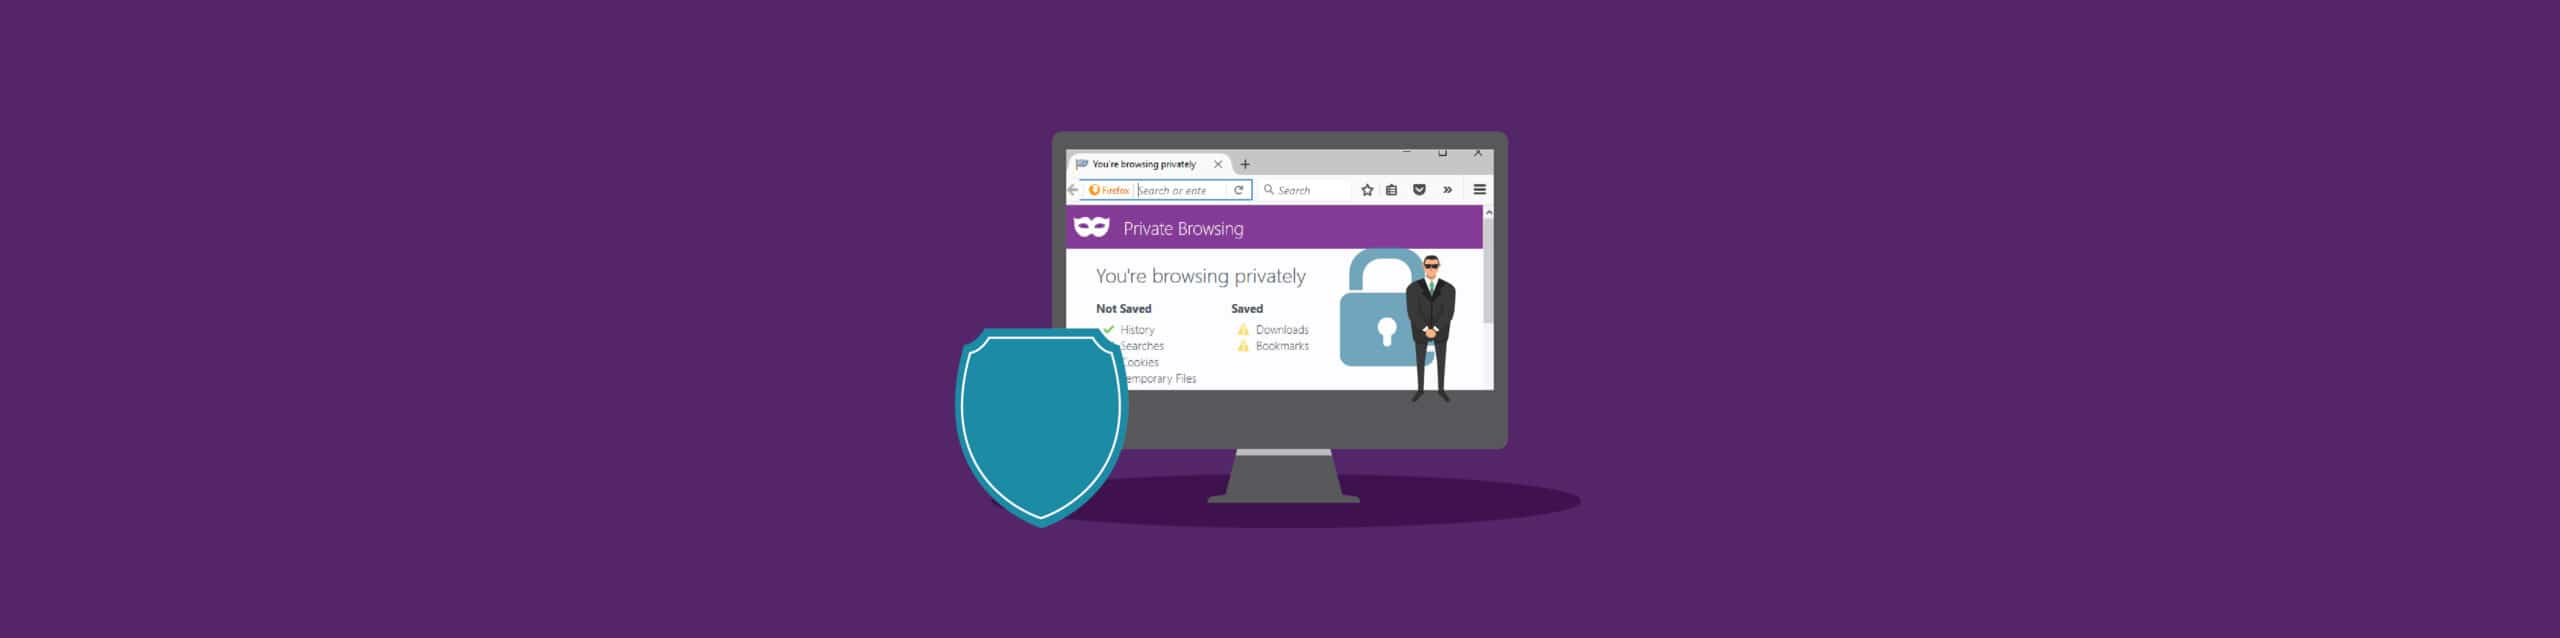 tips on how to browse privately-02